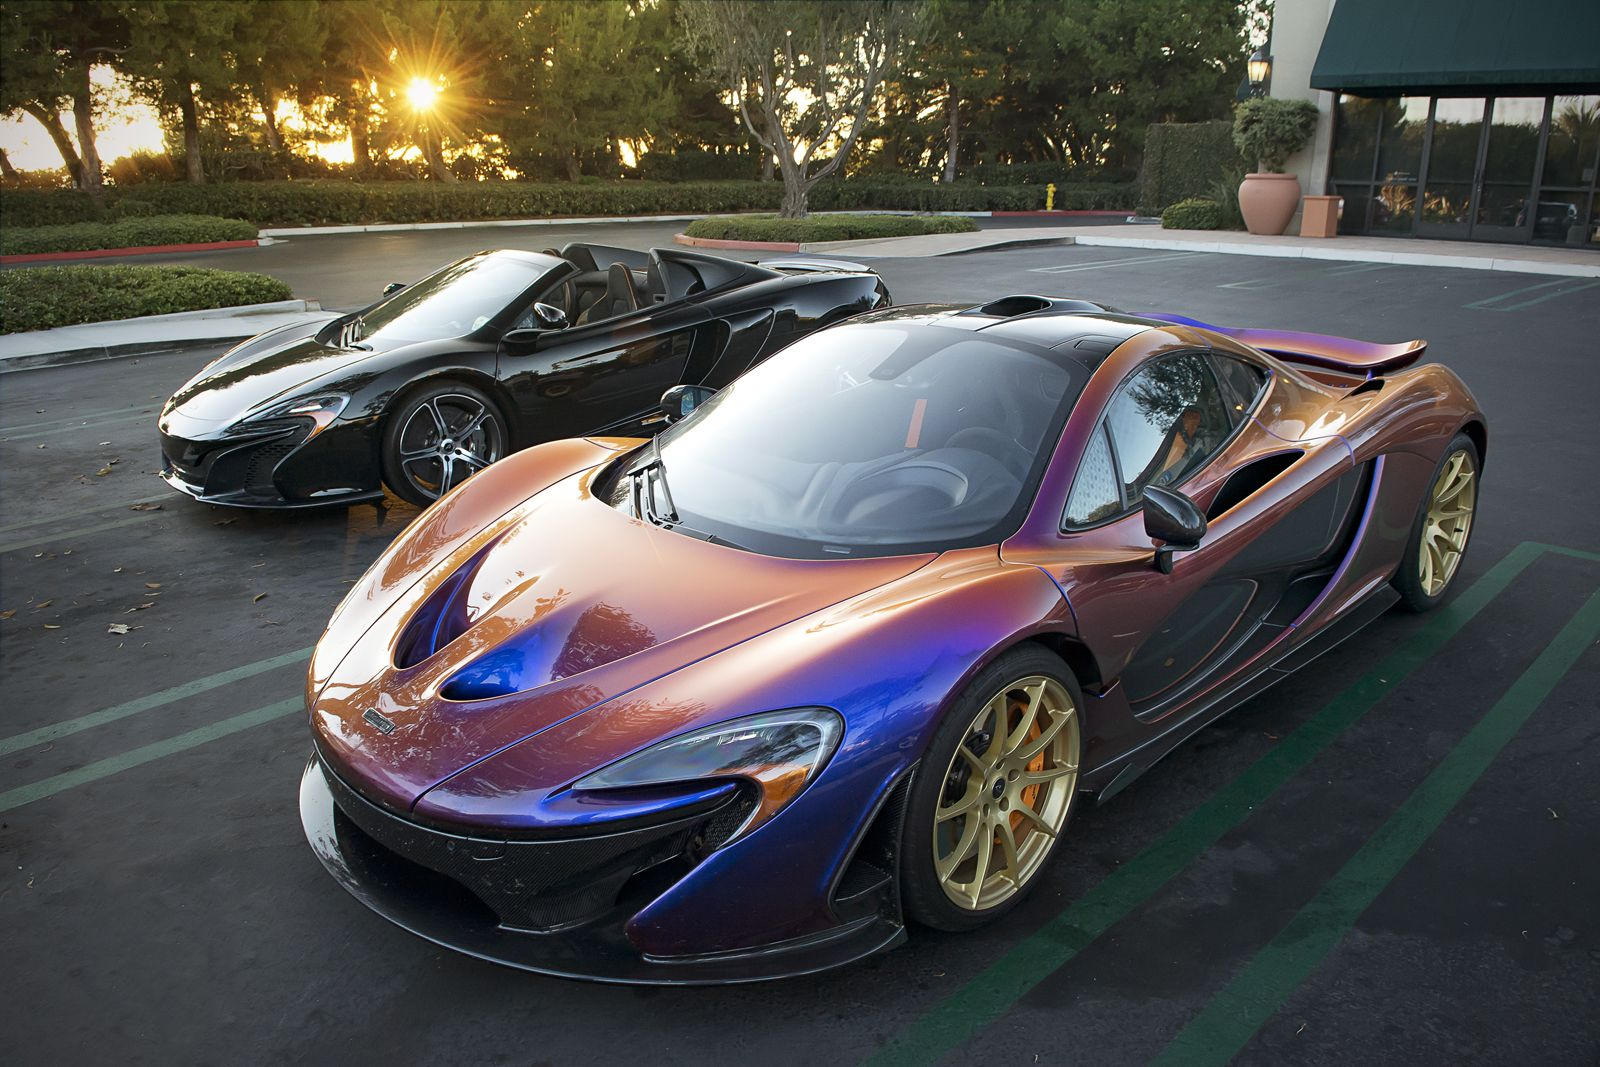 Photo Of The Day Cj Wilson S Insane Mclaren P1 Gtspirit